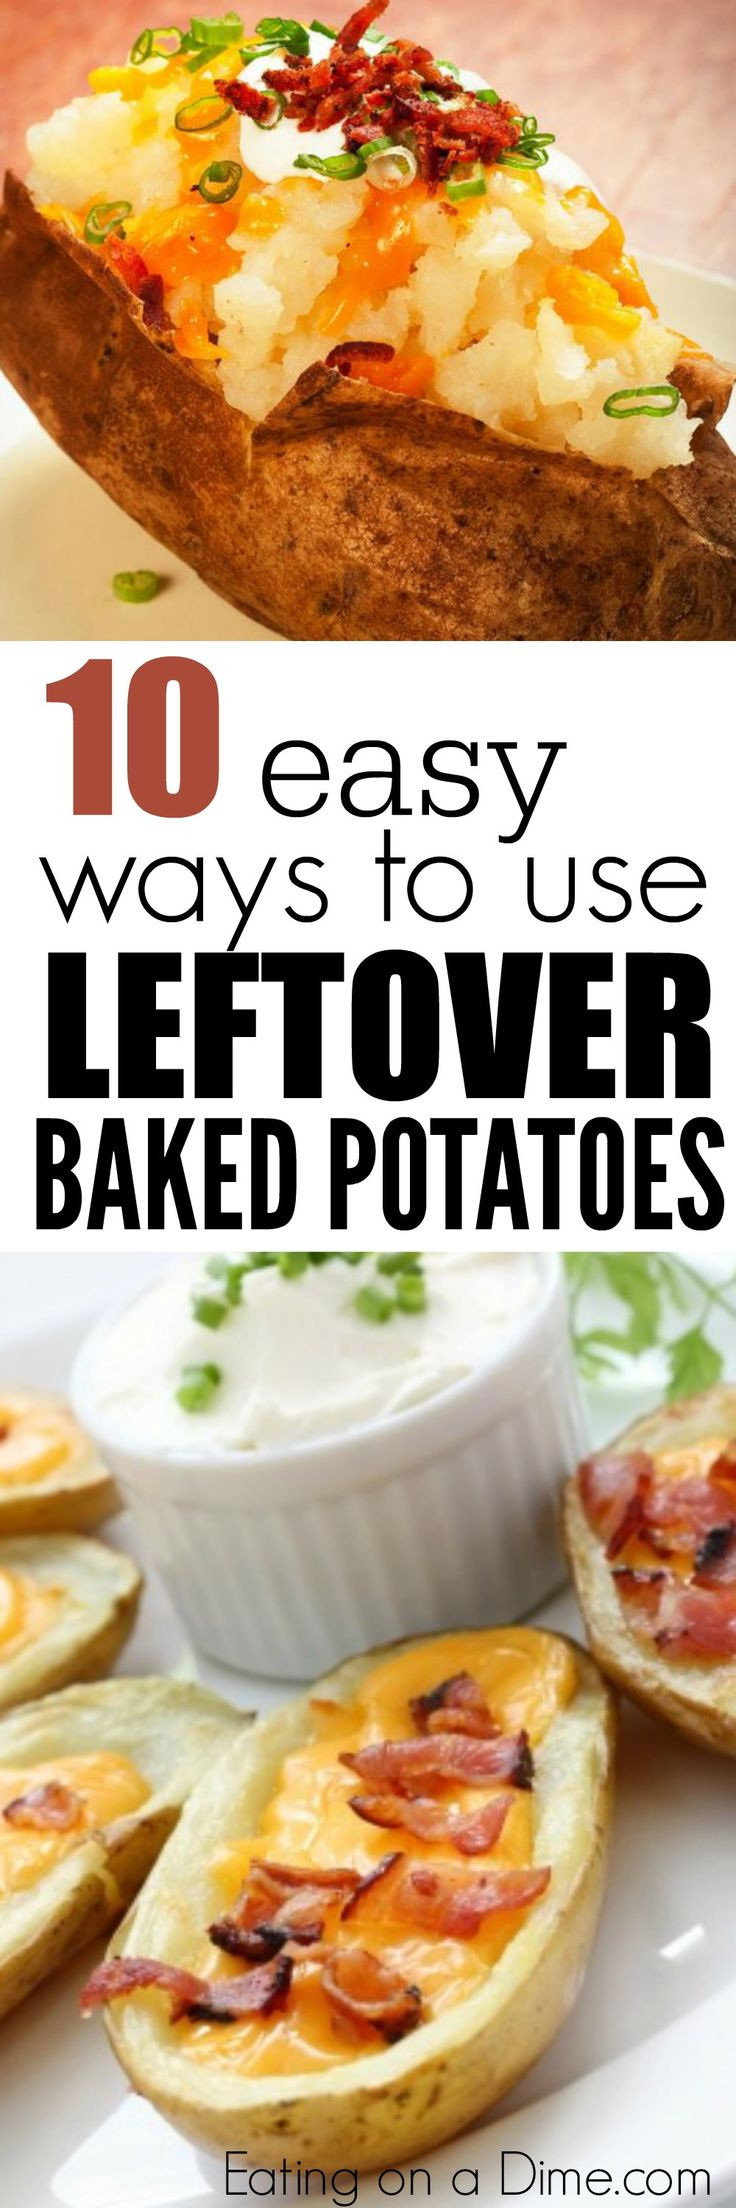 Leftover Baked Potato Recipes  25 best ideas about Leftover baked potatoes on Pinterest